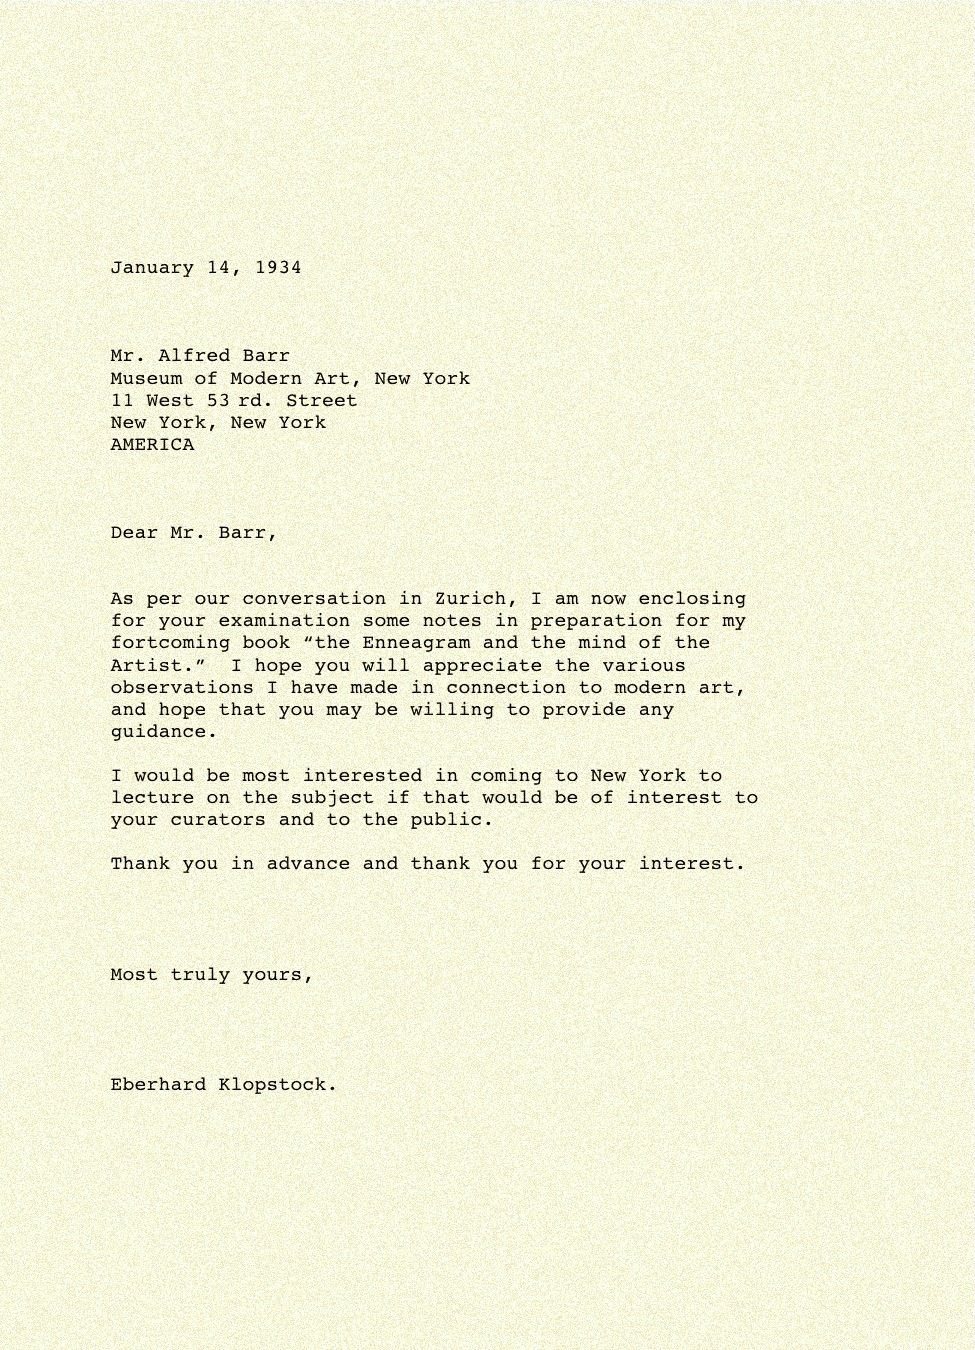 Pablo helguera blog archive the enneatype conference script klopstock letter stopboris Images